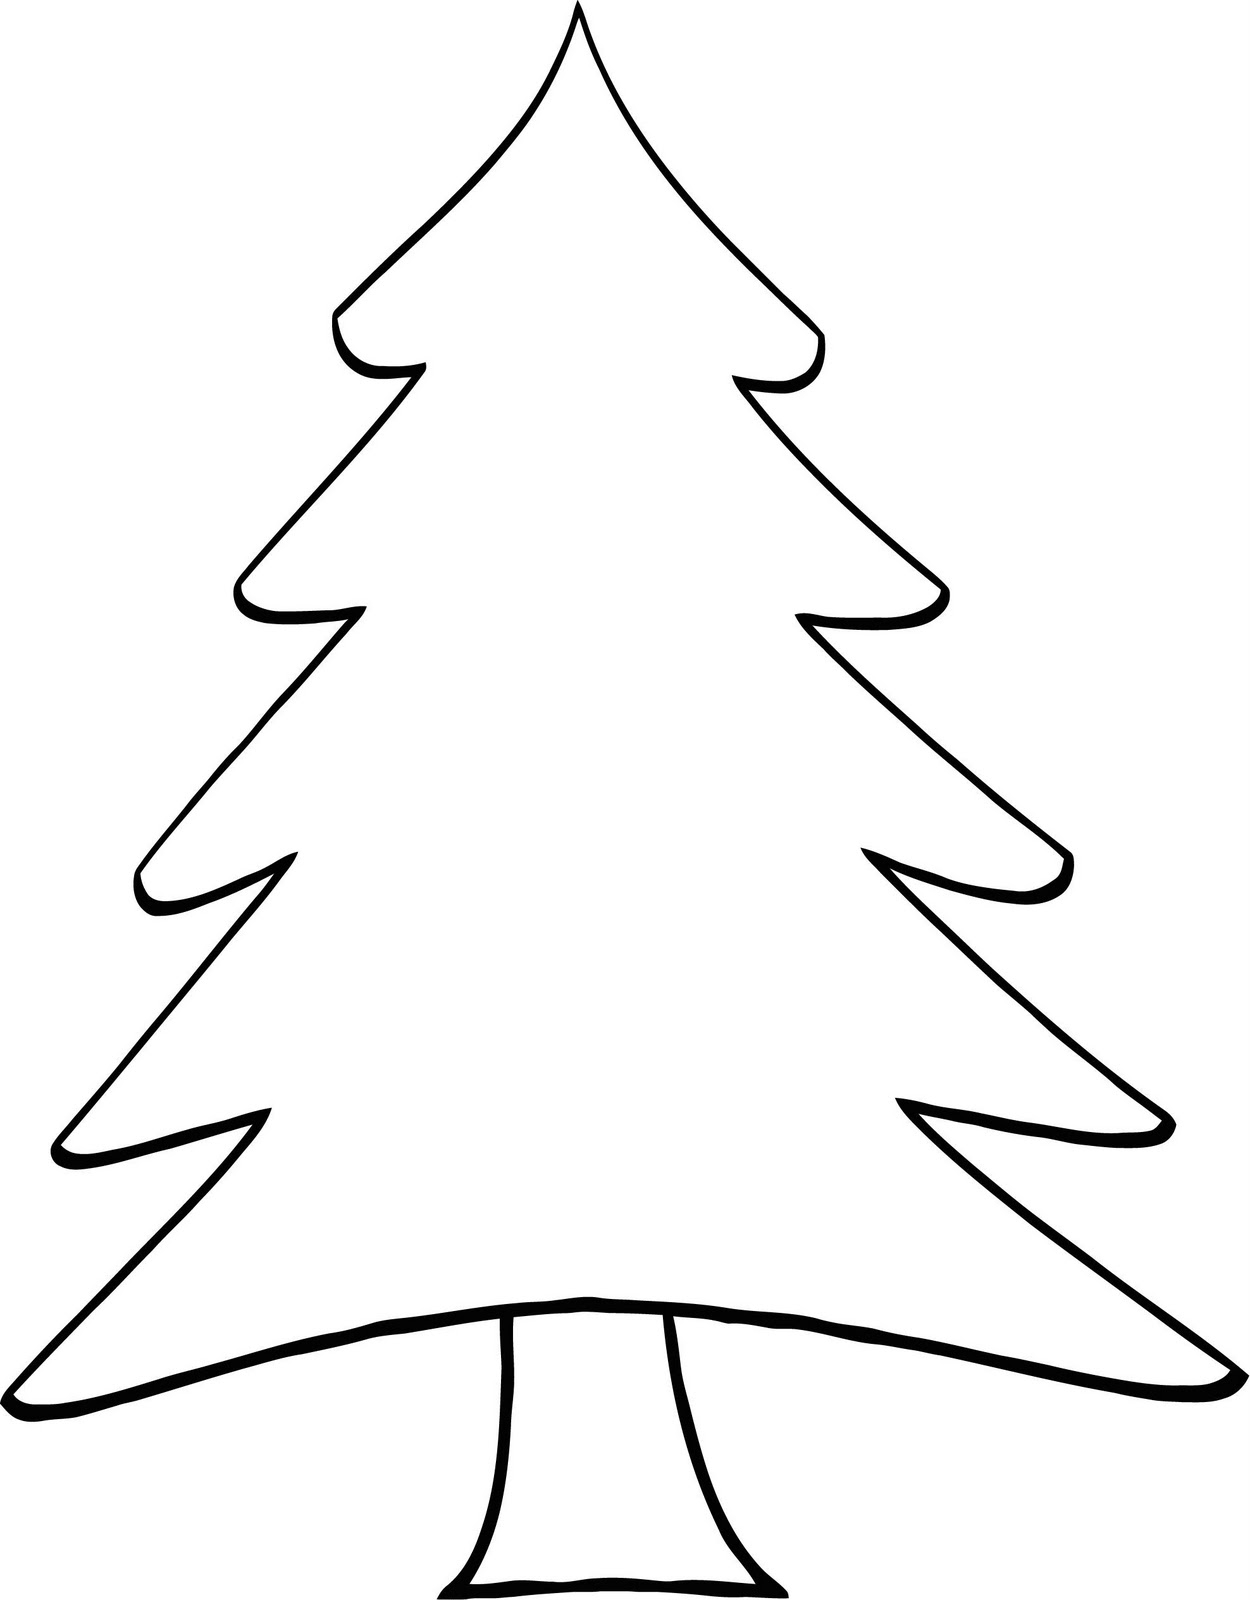 Pine Tree Clipart Black And White Best Of Pine Tree Cartoon Clipart